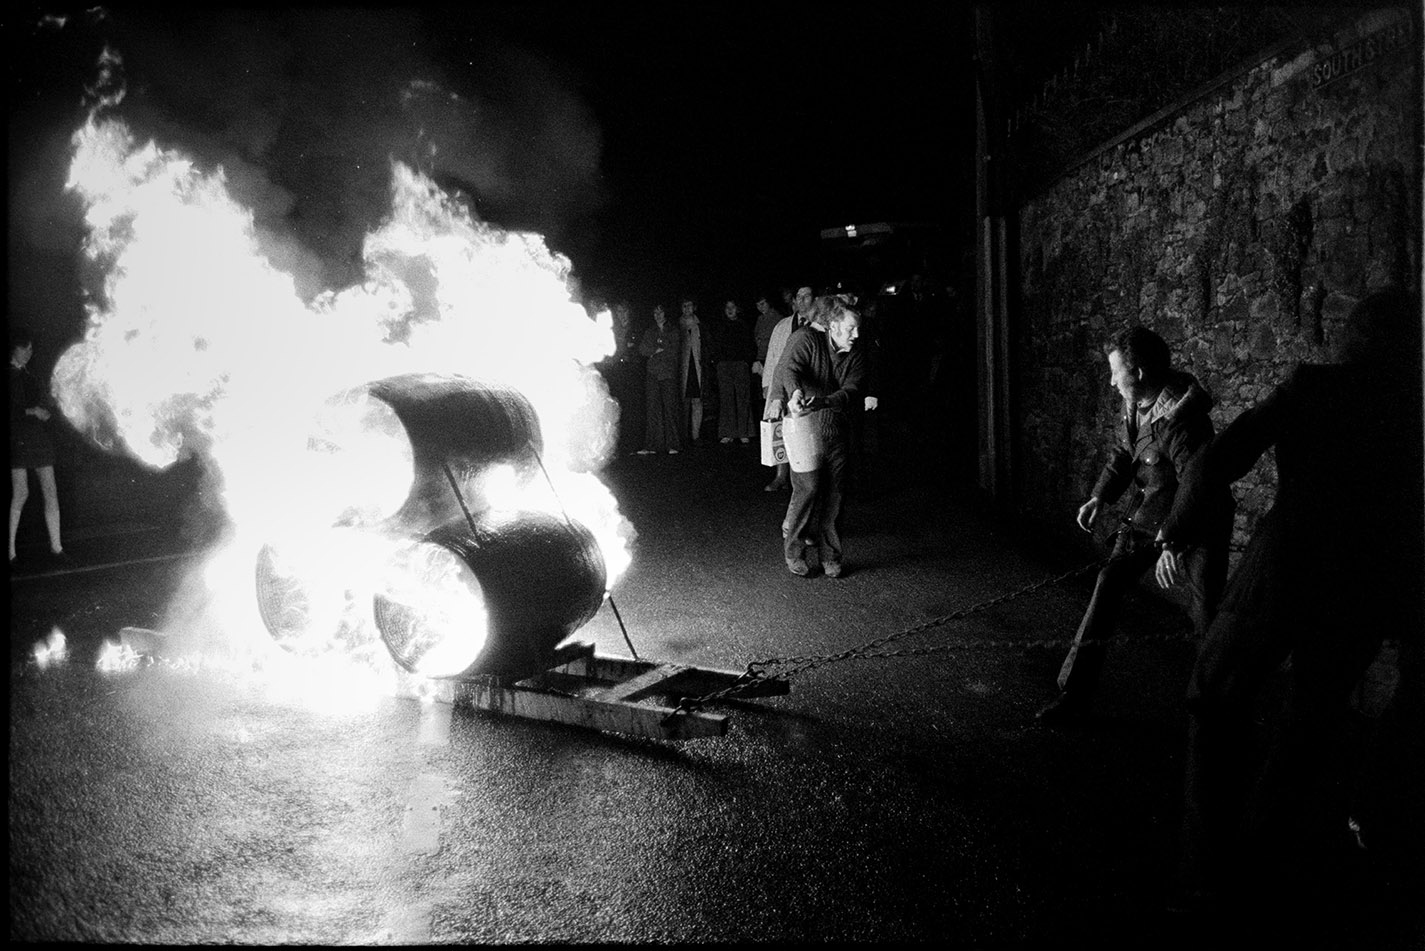 Burning tar barrels pulled through the street at night, Hatherleigh, 6 November 1974. Documentary photograph by James Ravilious for the Beaford Archive © Beaford Arts